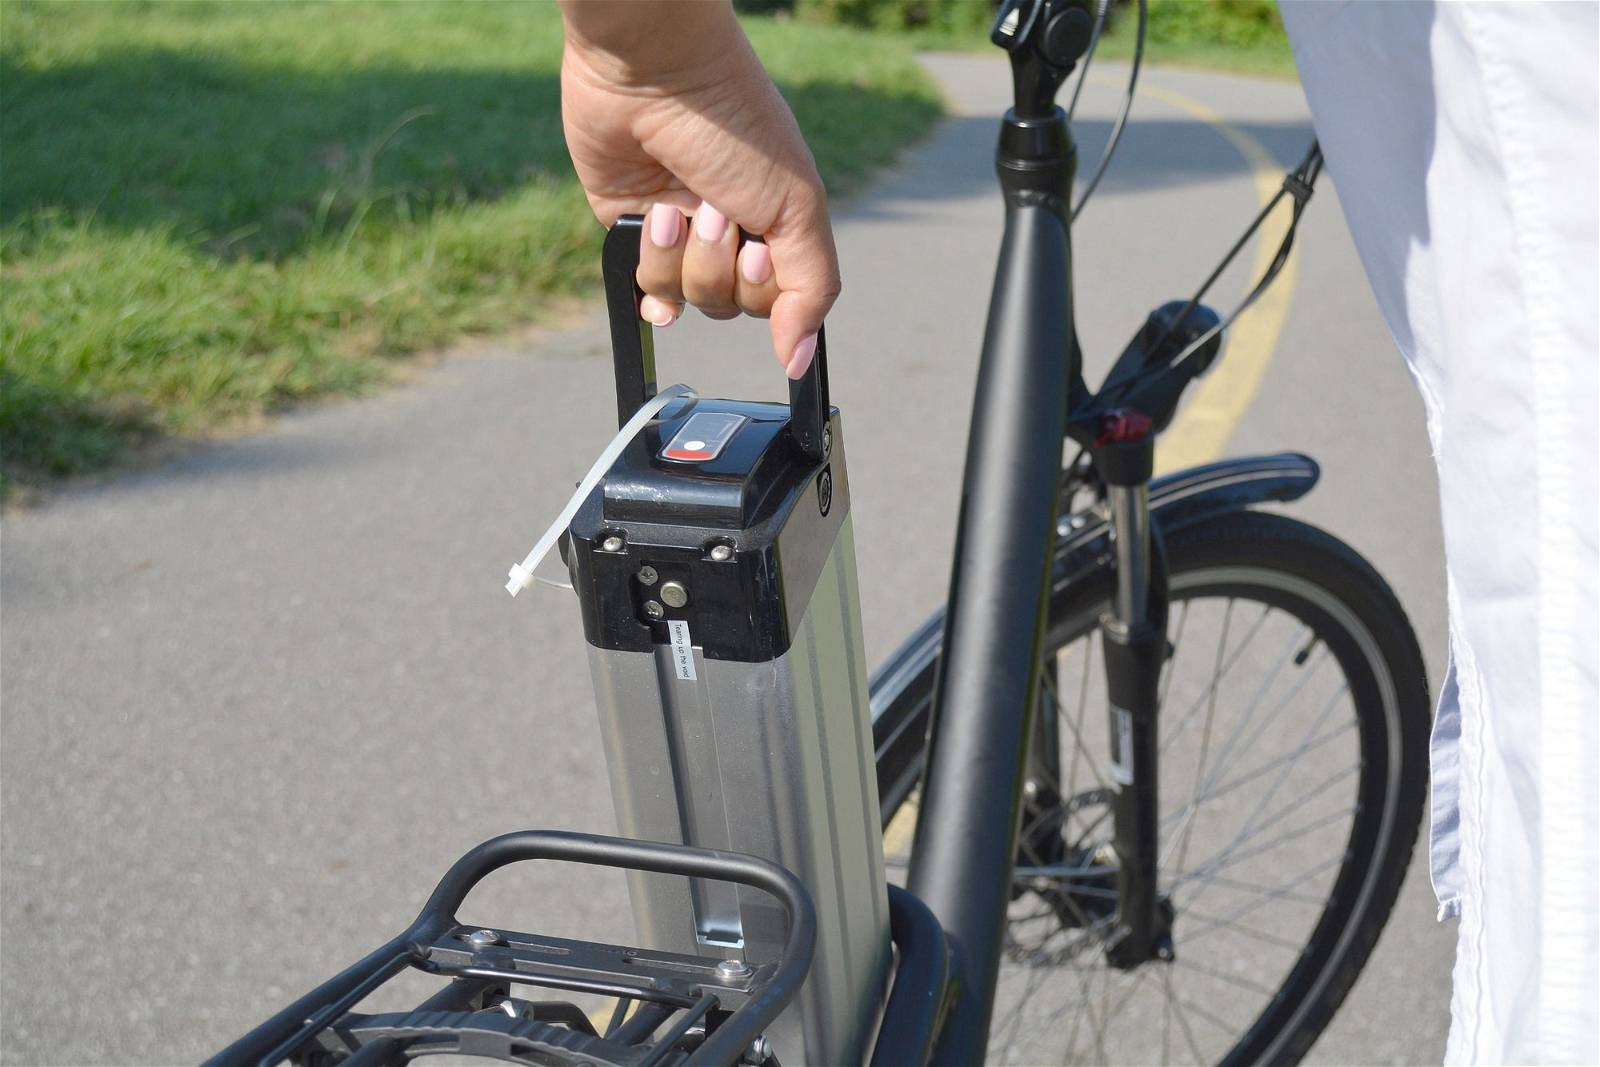 Can You Ride an Ebike Without the Battery